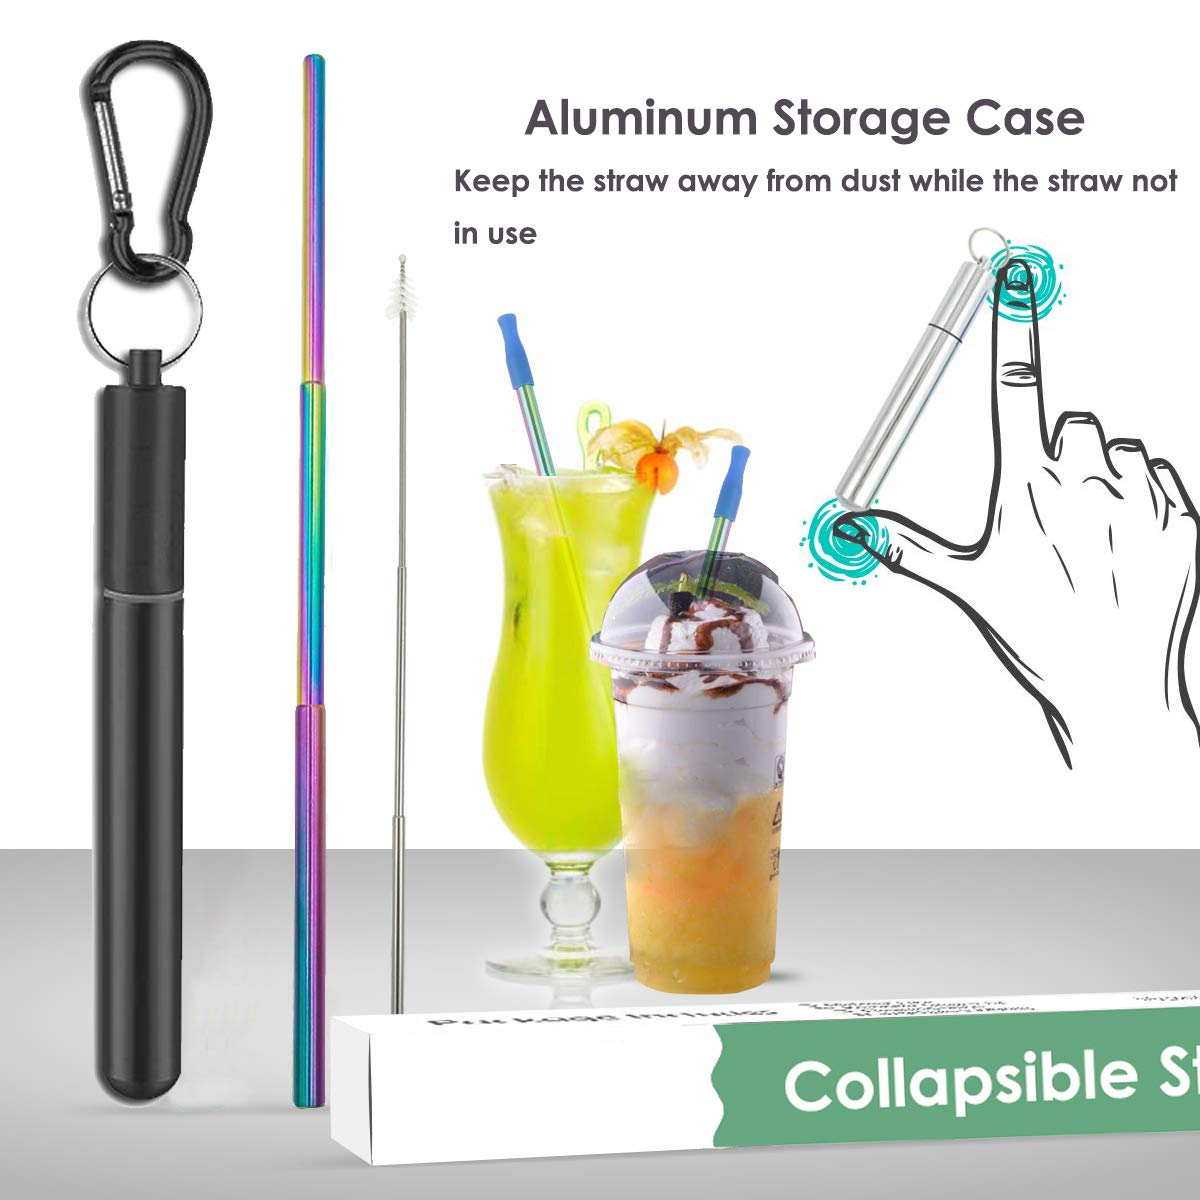 L.Rui Portable Stainless Steel Metal Drinking Foldable Straw with Travel Storage Case /& Cleaning Brush for Adults and Kids 1Pcs Collapsible Reusable Straws